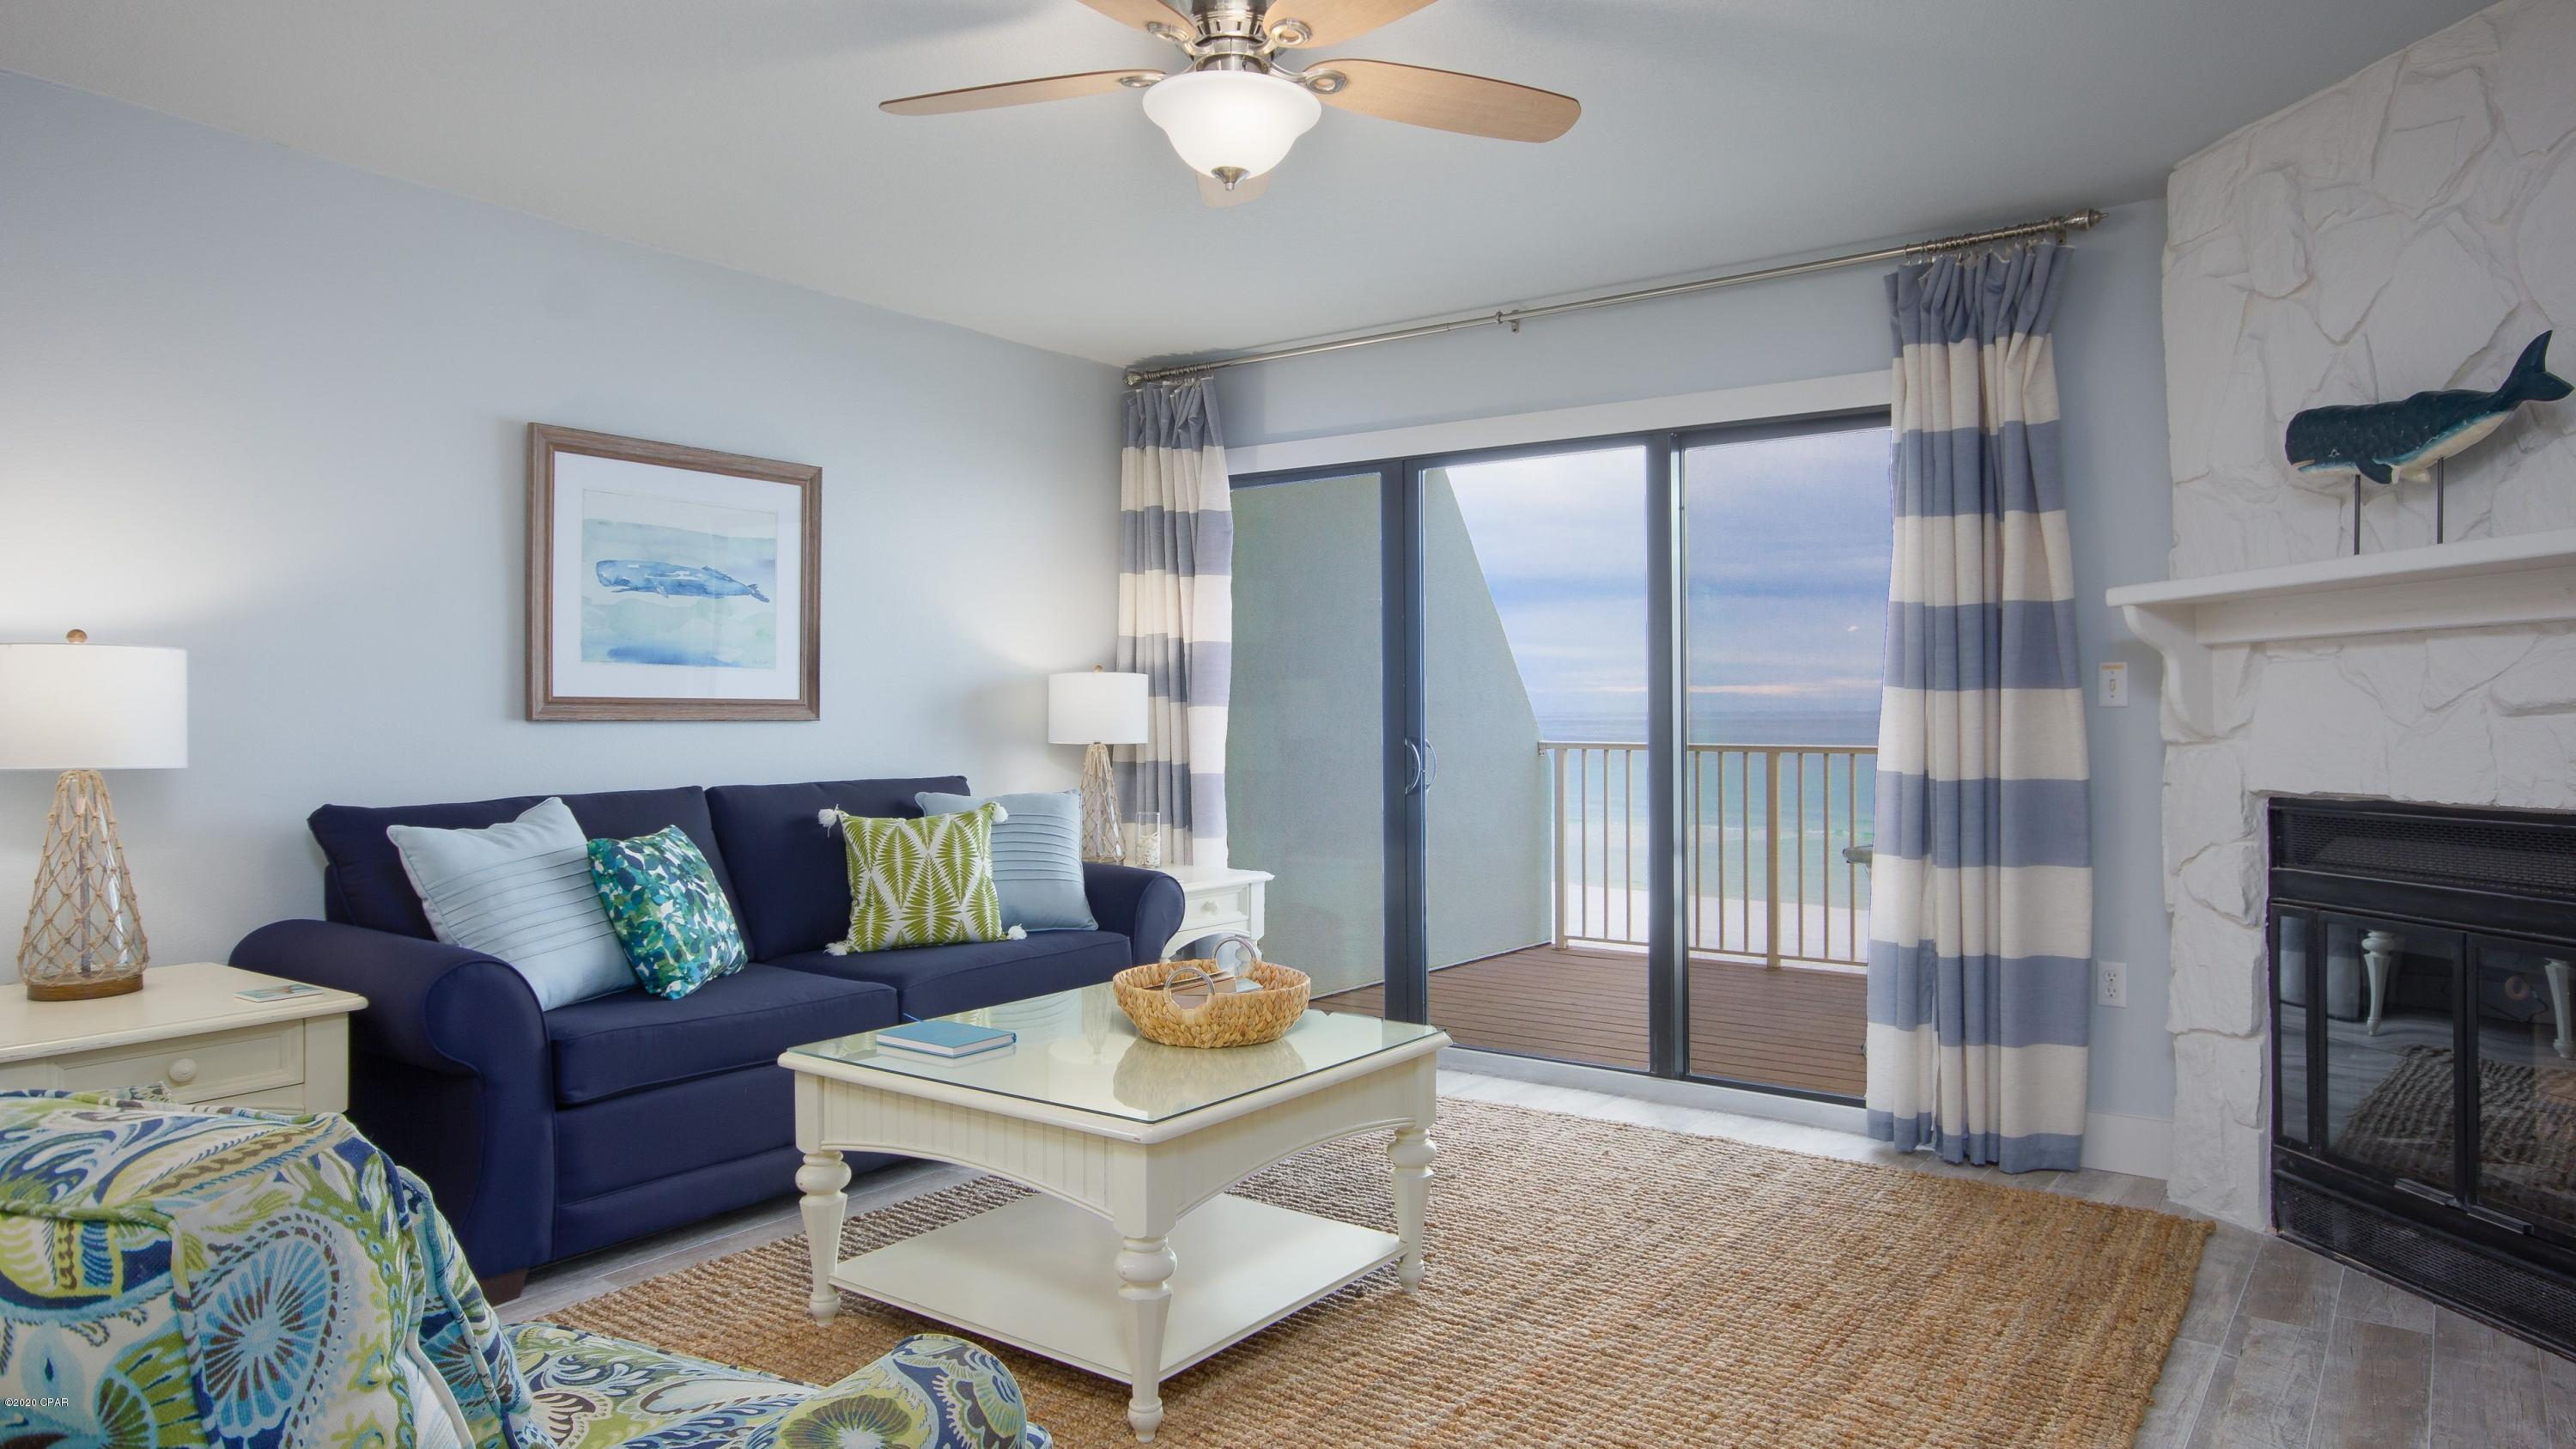 A 4 Bedroom 4 Bedroom Crystal Beach Townhome